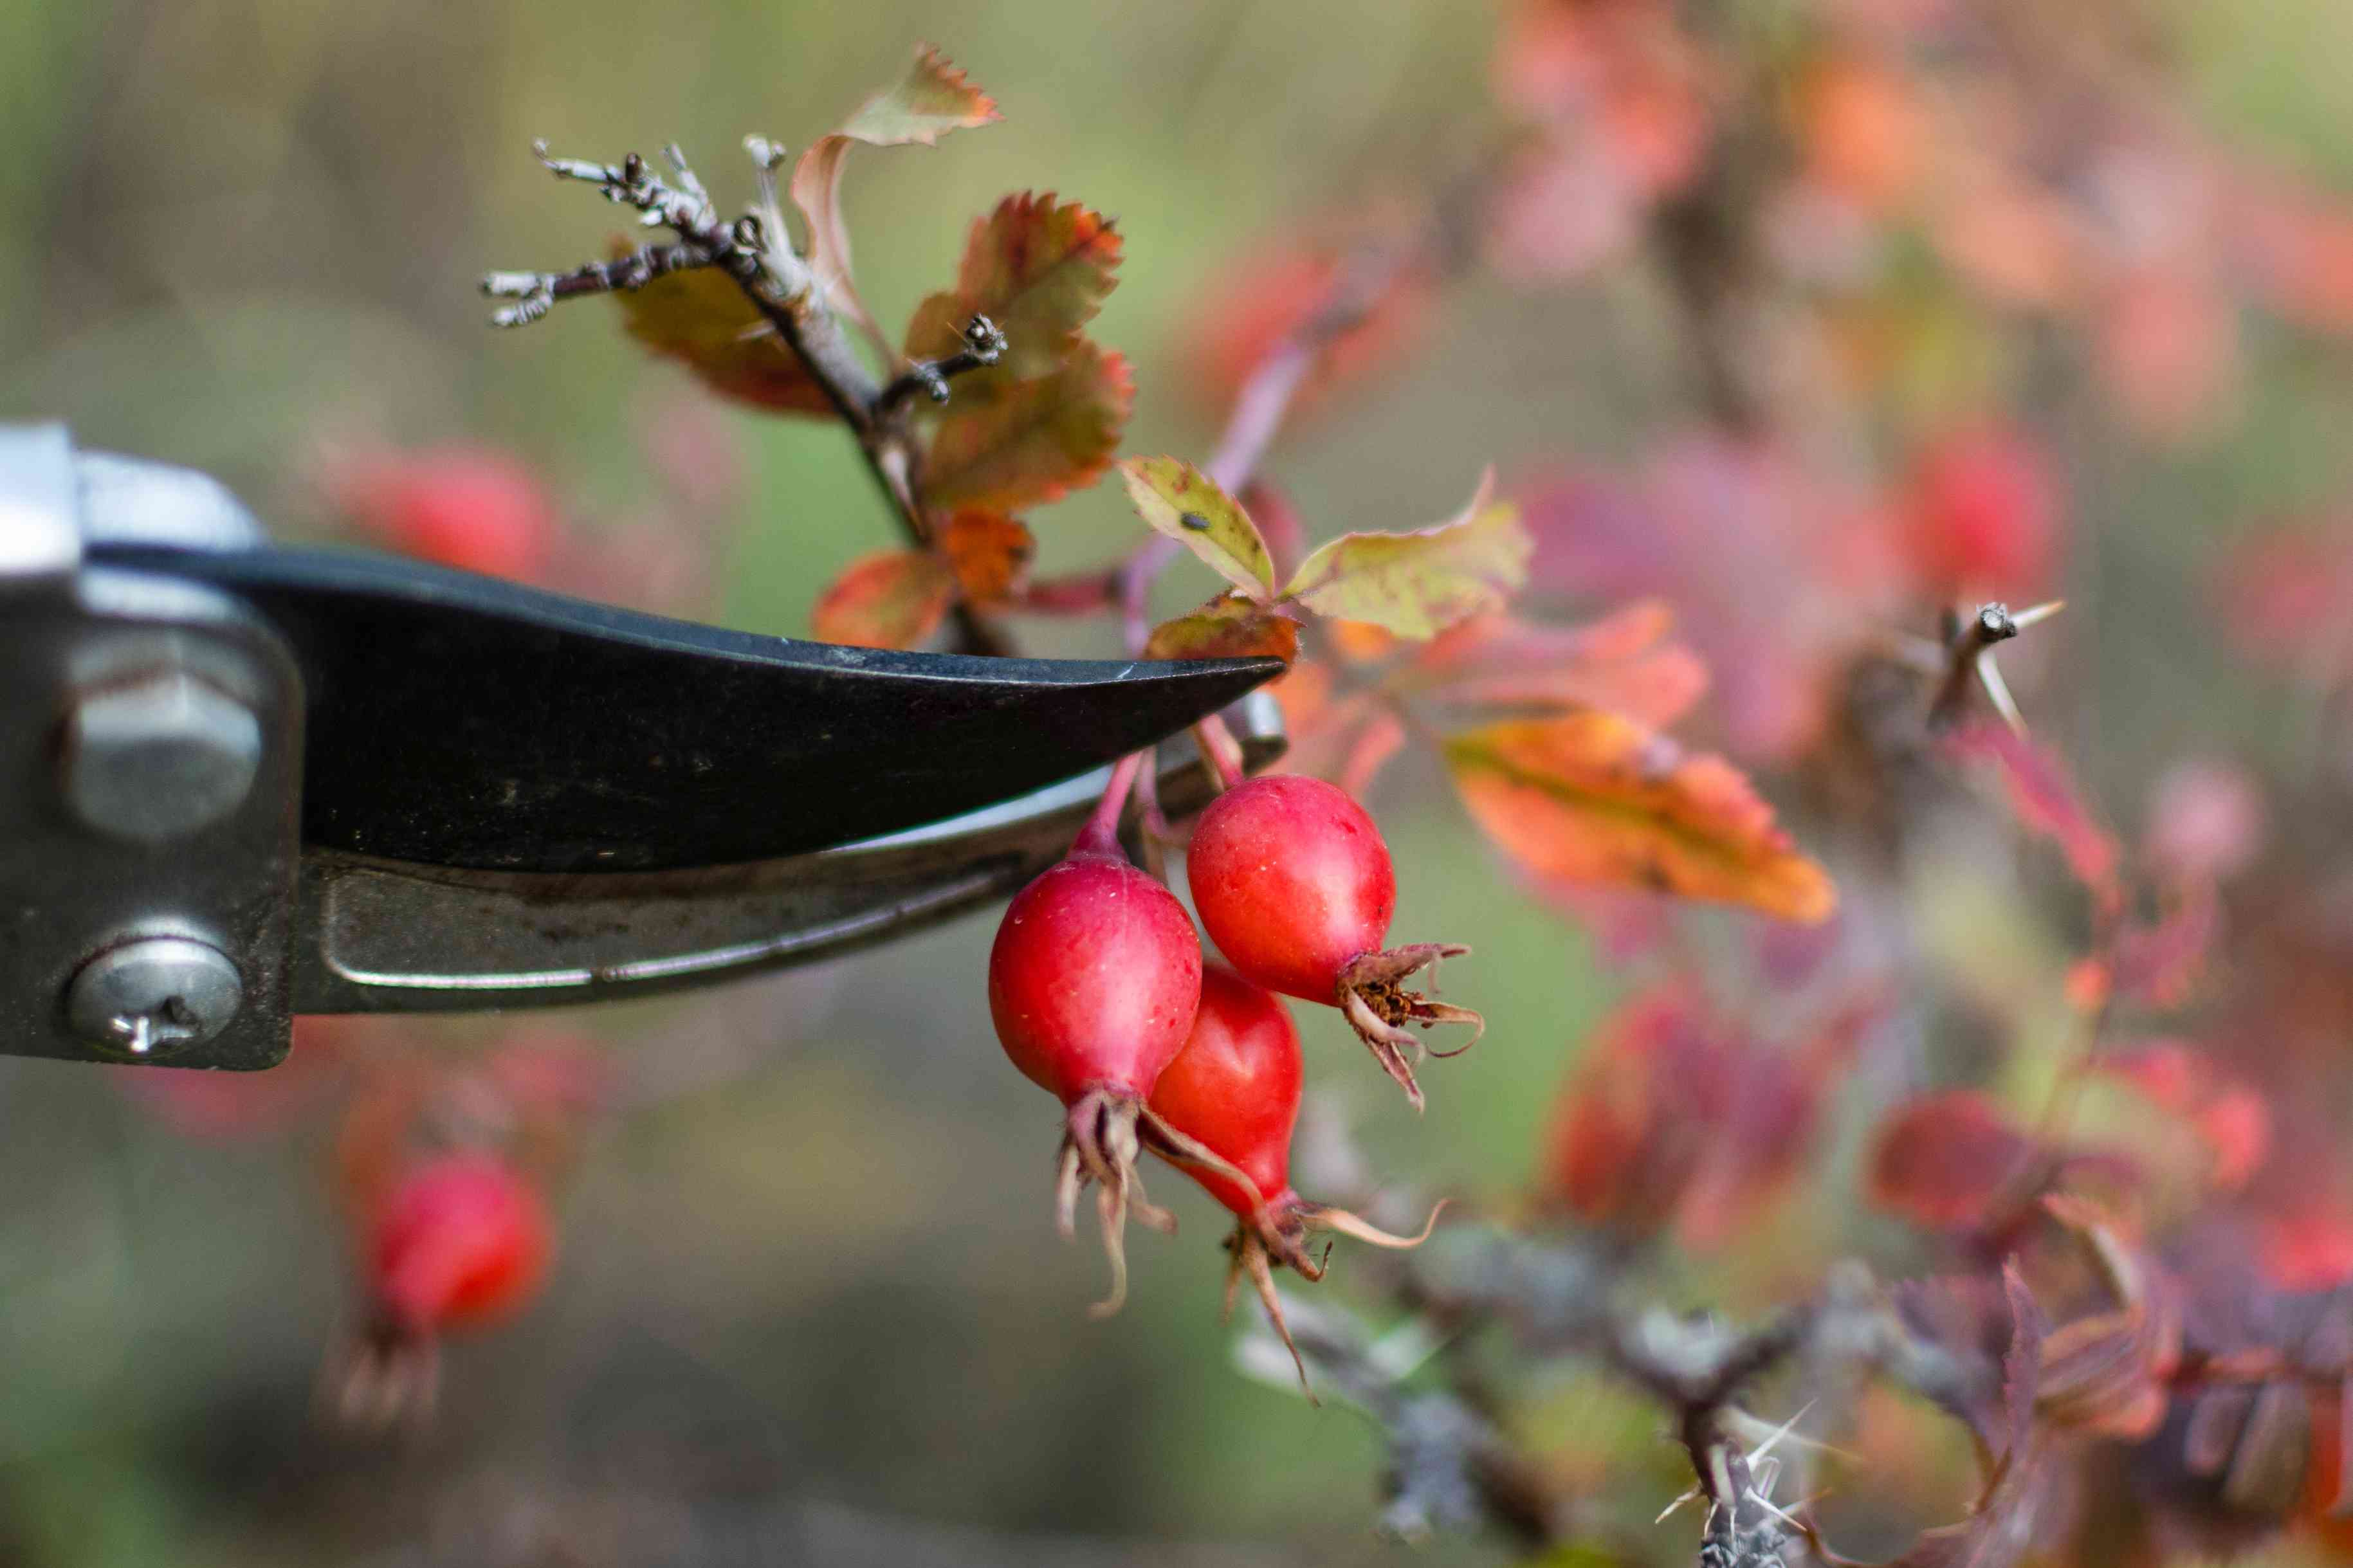 Ripe rose hips cut off from branch with pruners closeup